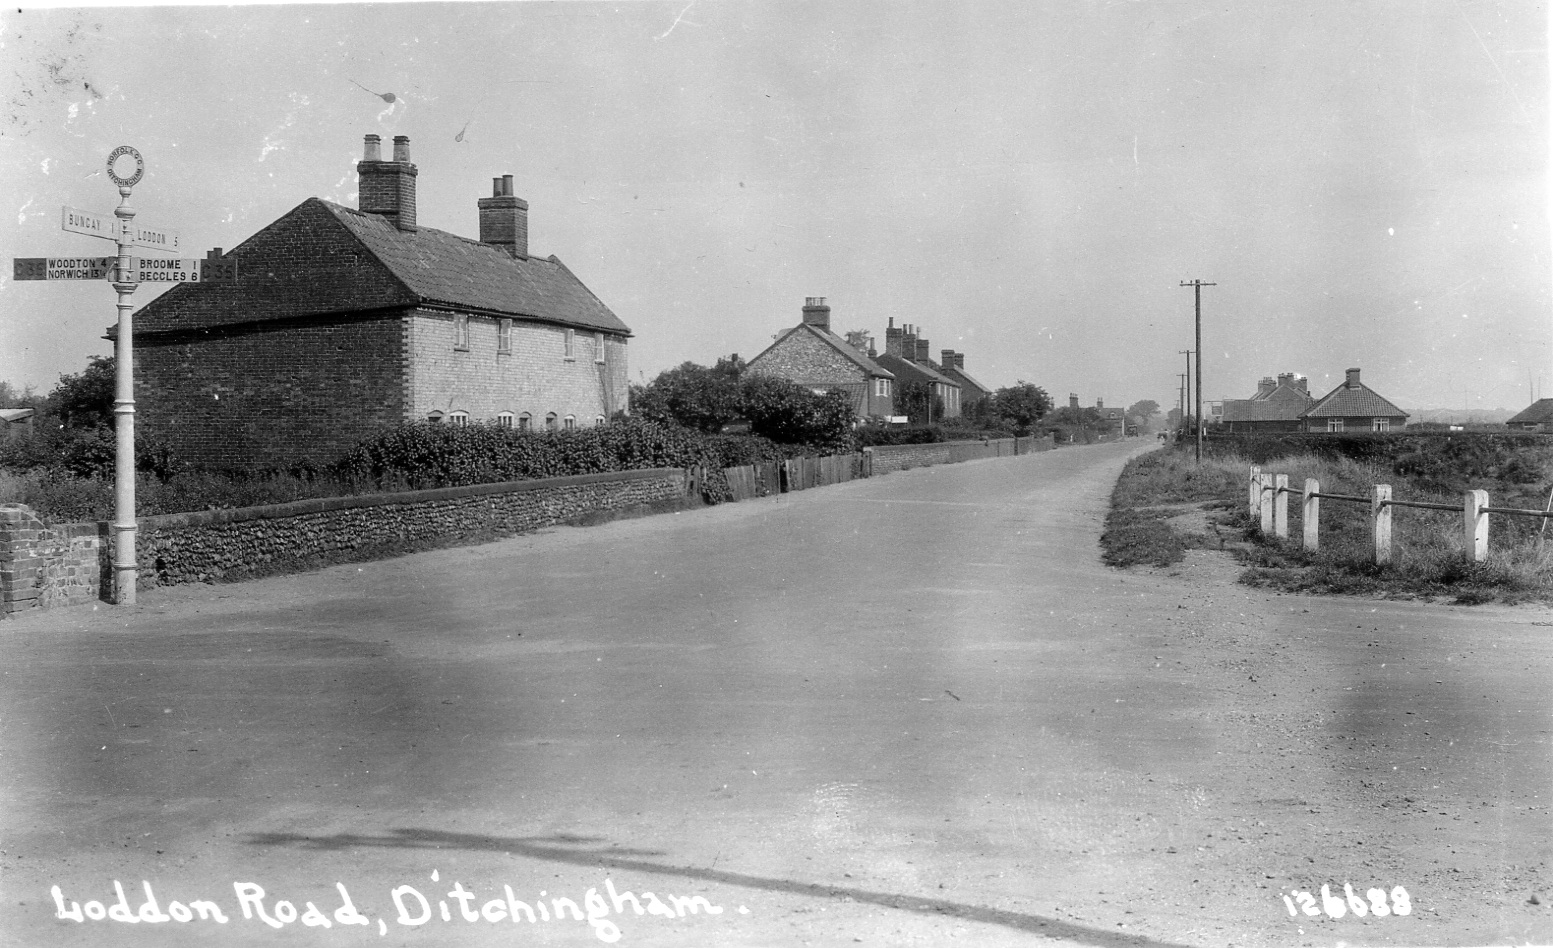 Ditchingham crossroads looking towards Loddon - the village shop is now on the left past these cottages.